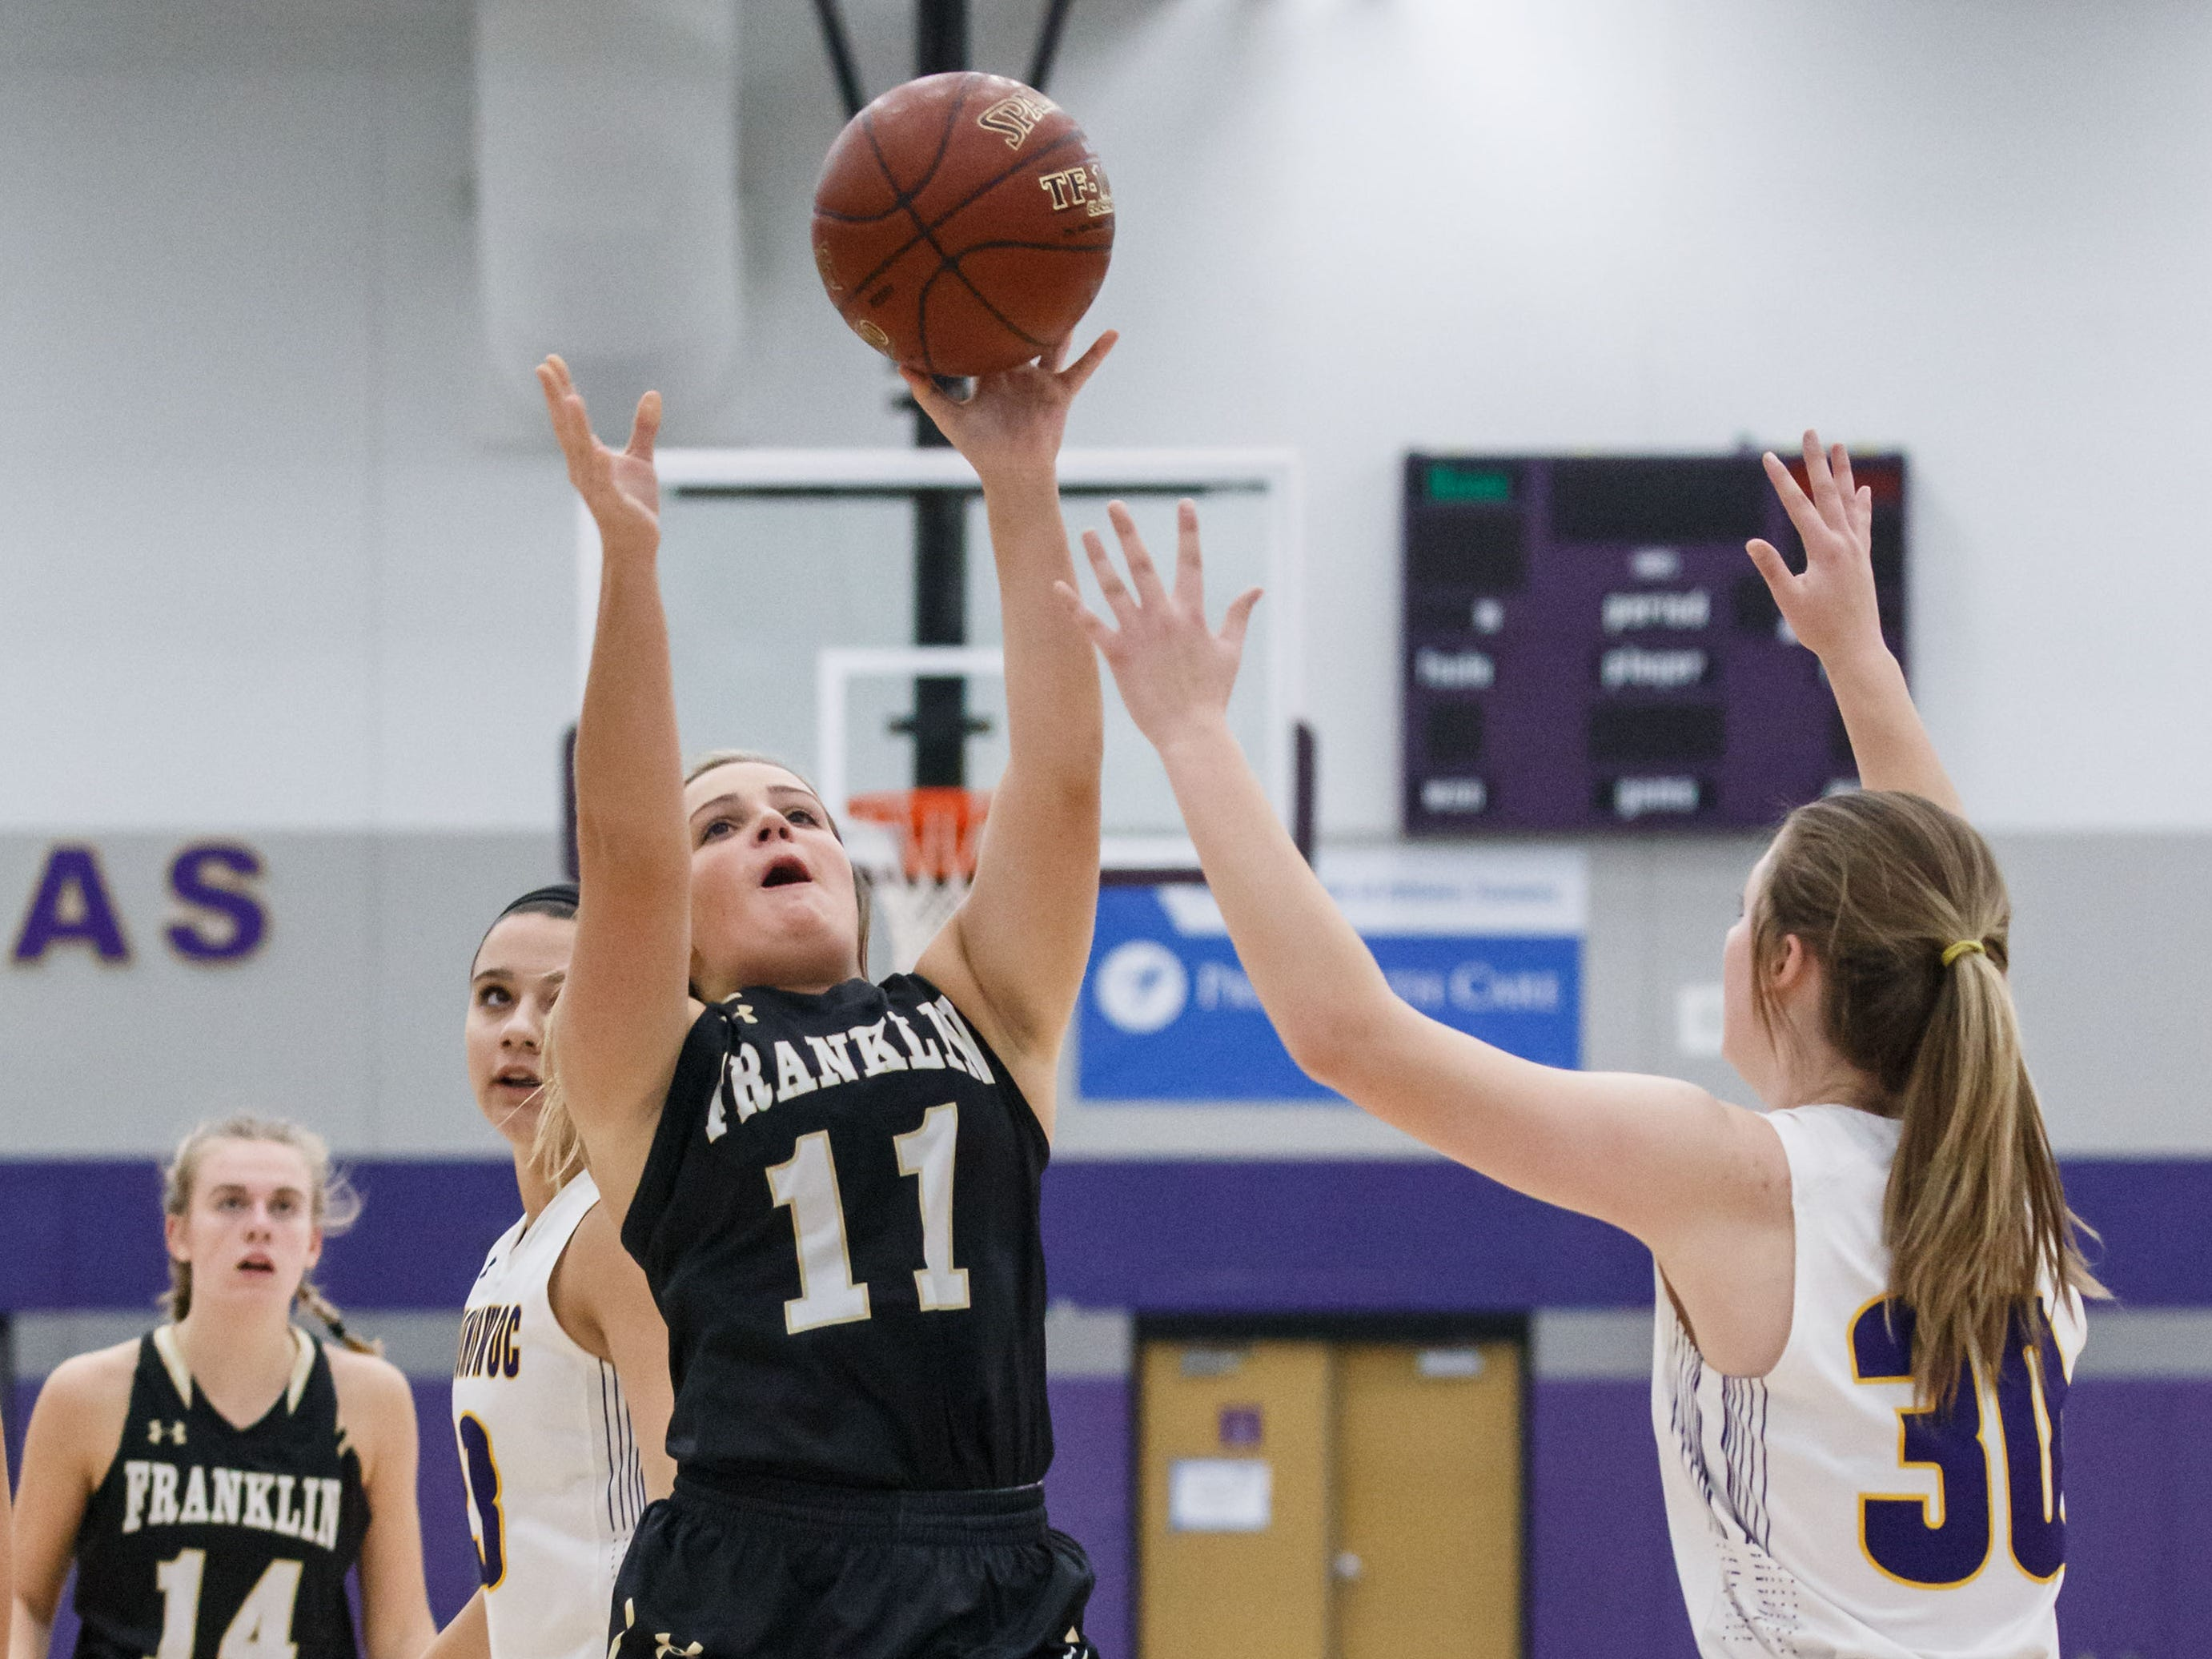 Franklin junior Jillian Krueger (11) drives in for a shot during the game at Oconomowoc on Monday, Nov. 19, 2018.